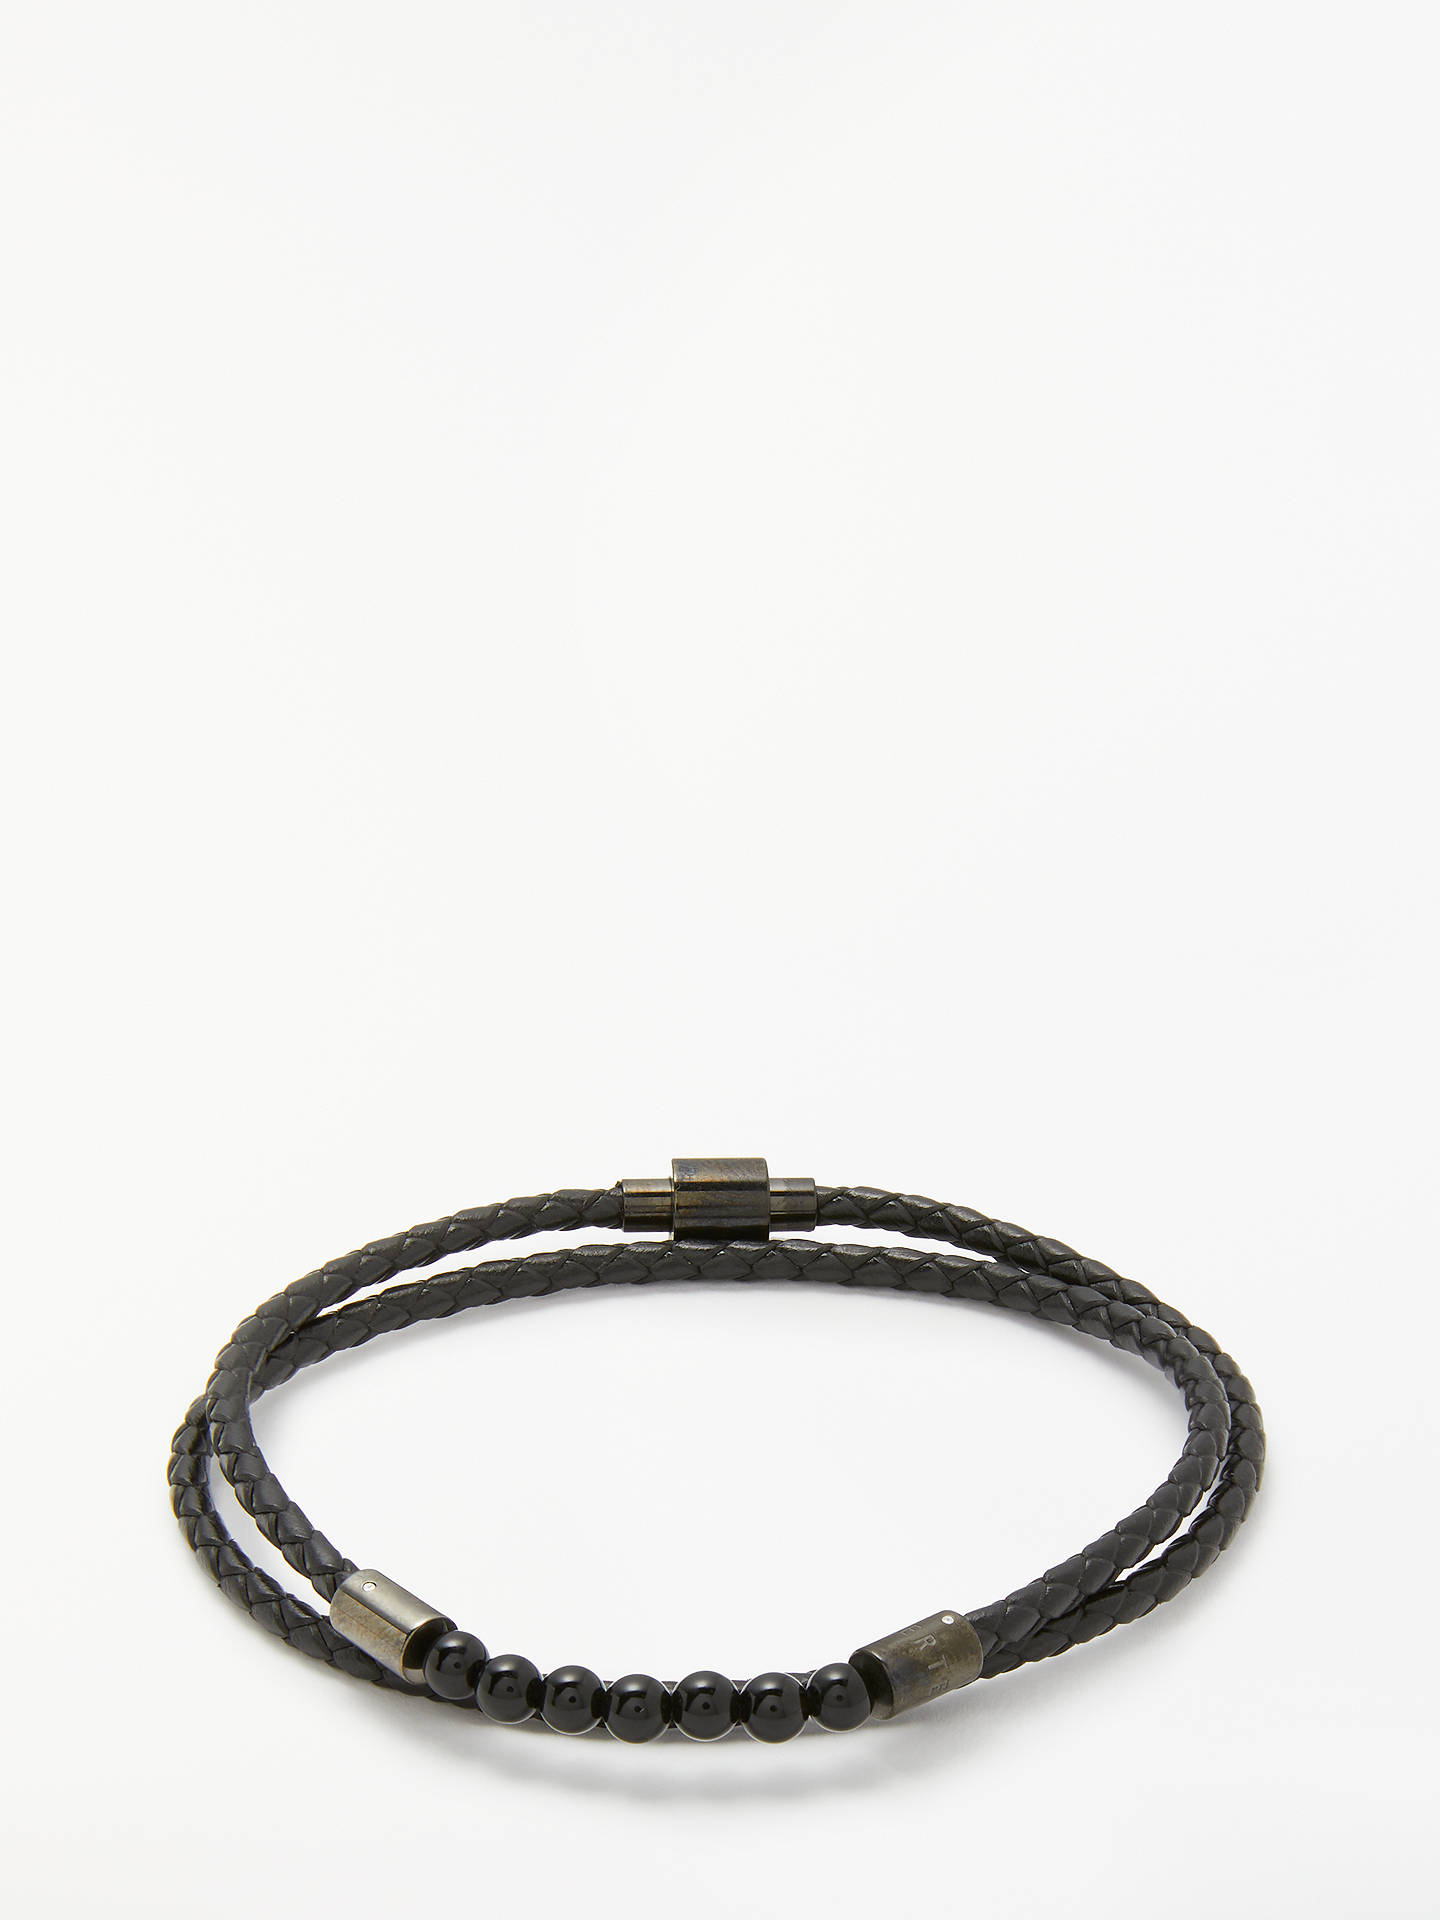 Buy Ted Baker Lizaa Beaded Leather Double Wrap Bracelet, Black Online at johnlewis.com